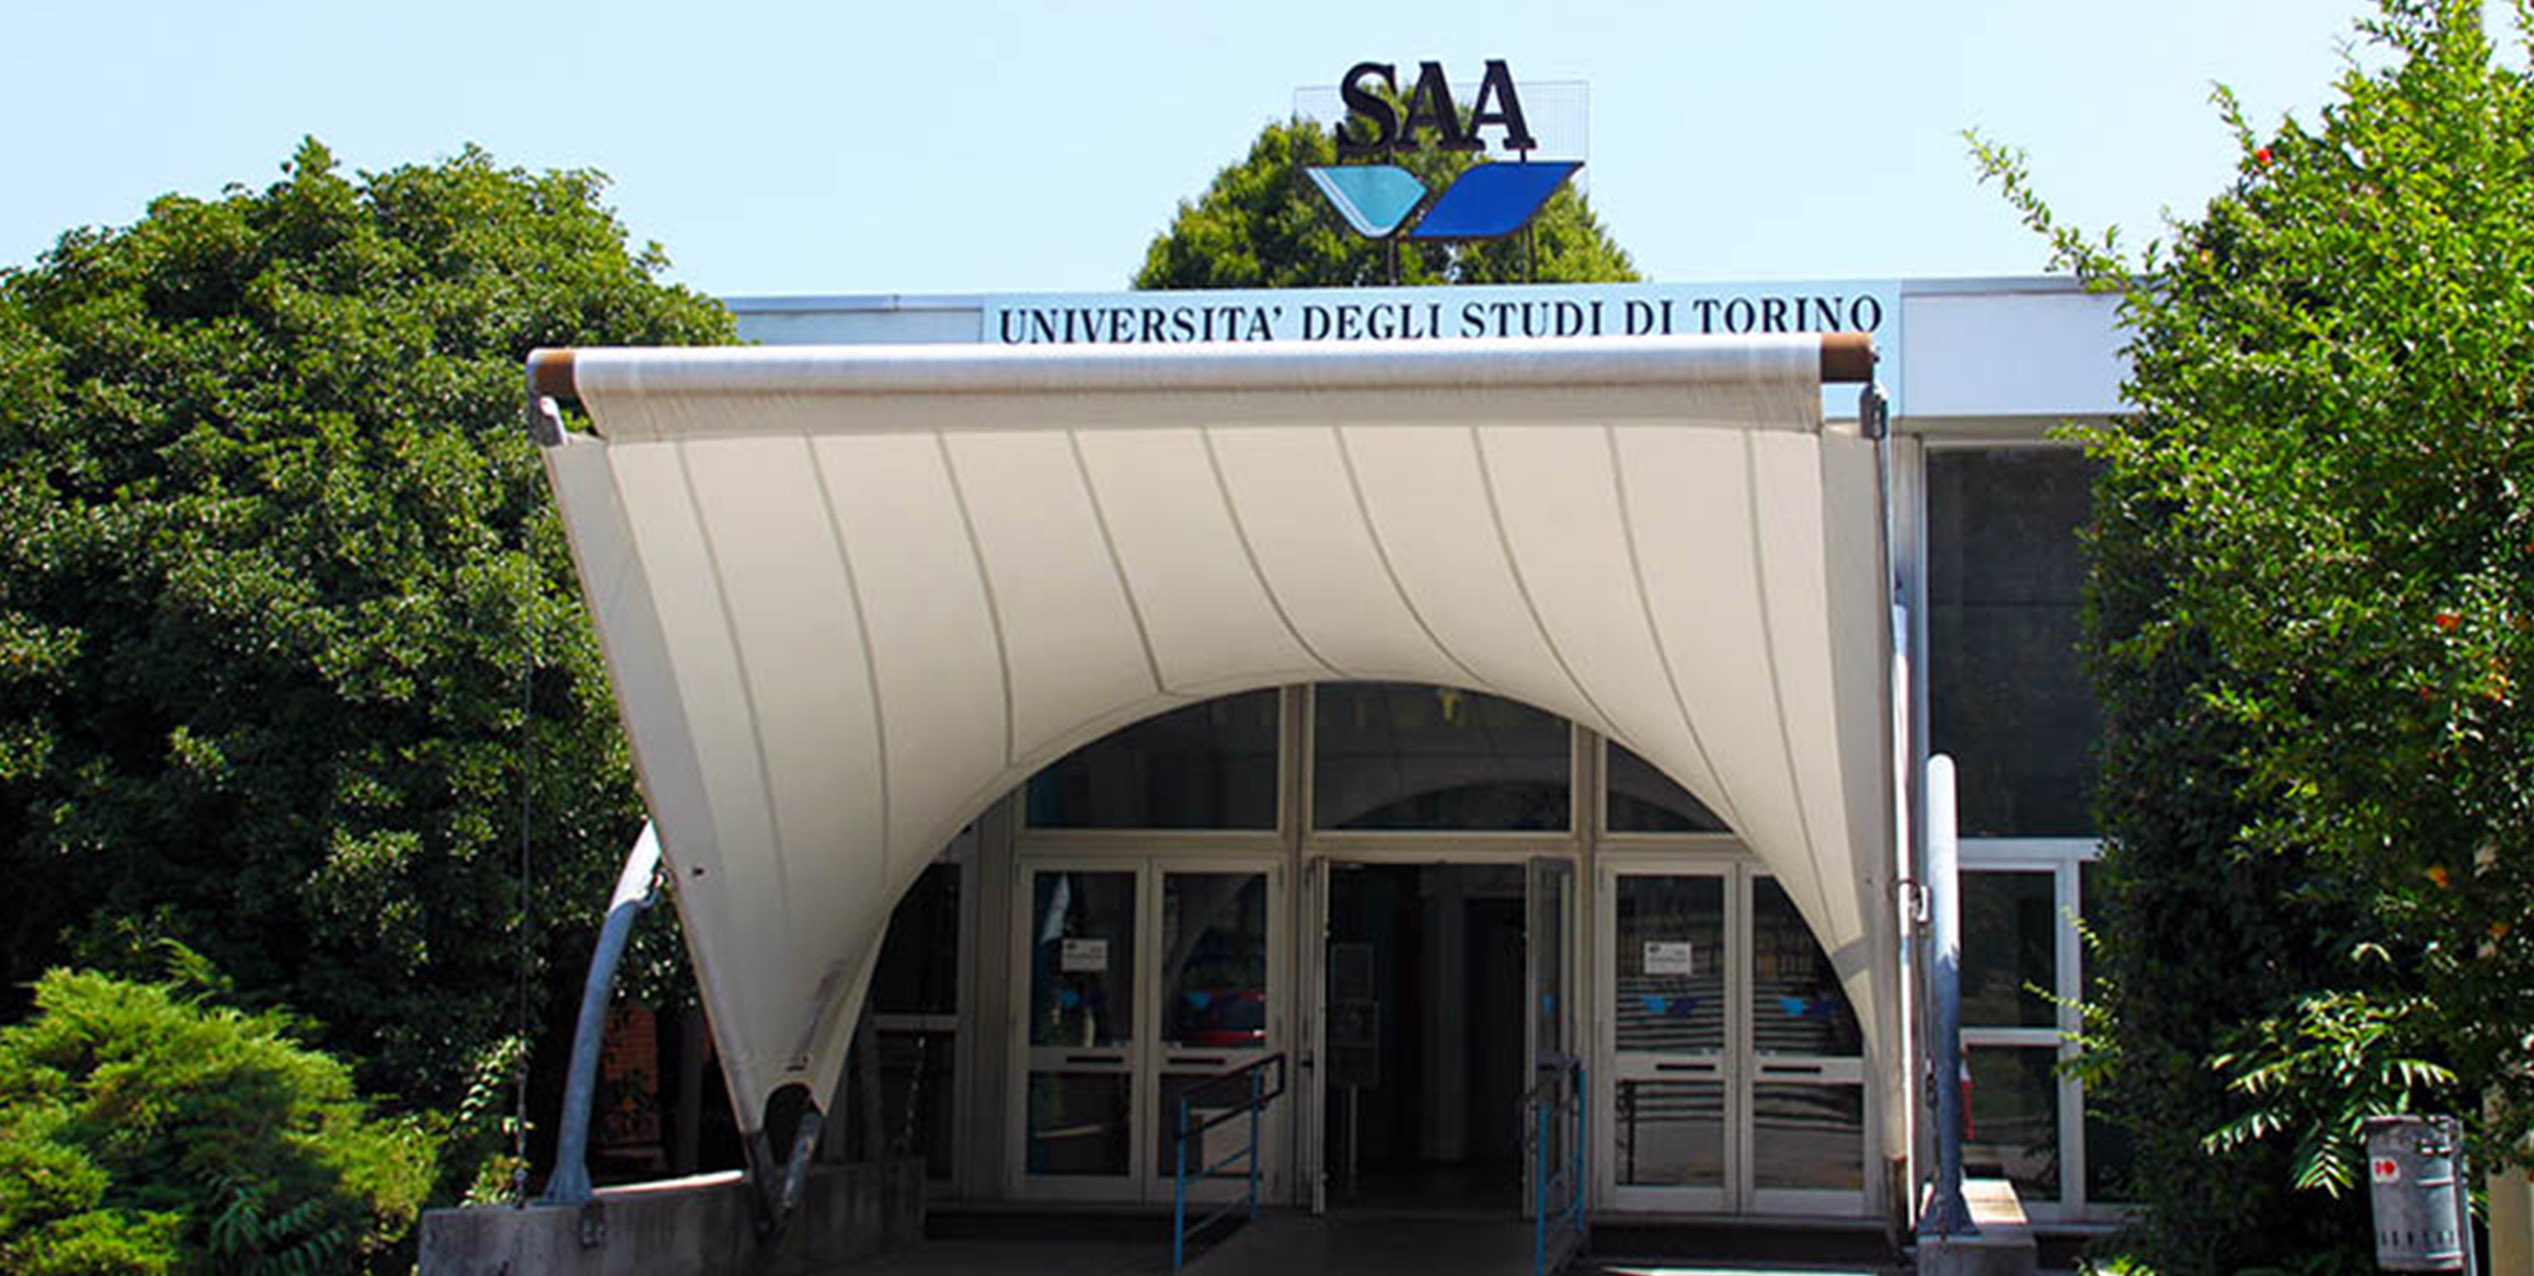 school of management saa torino